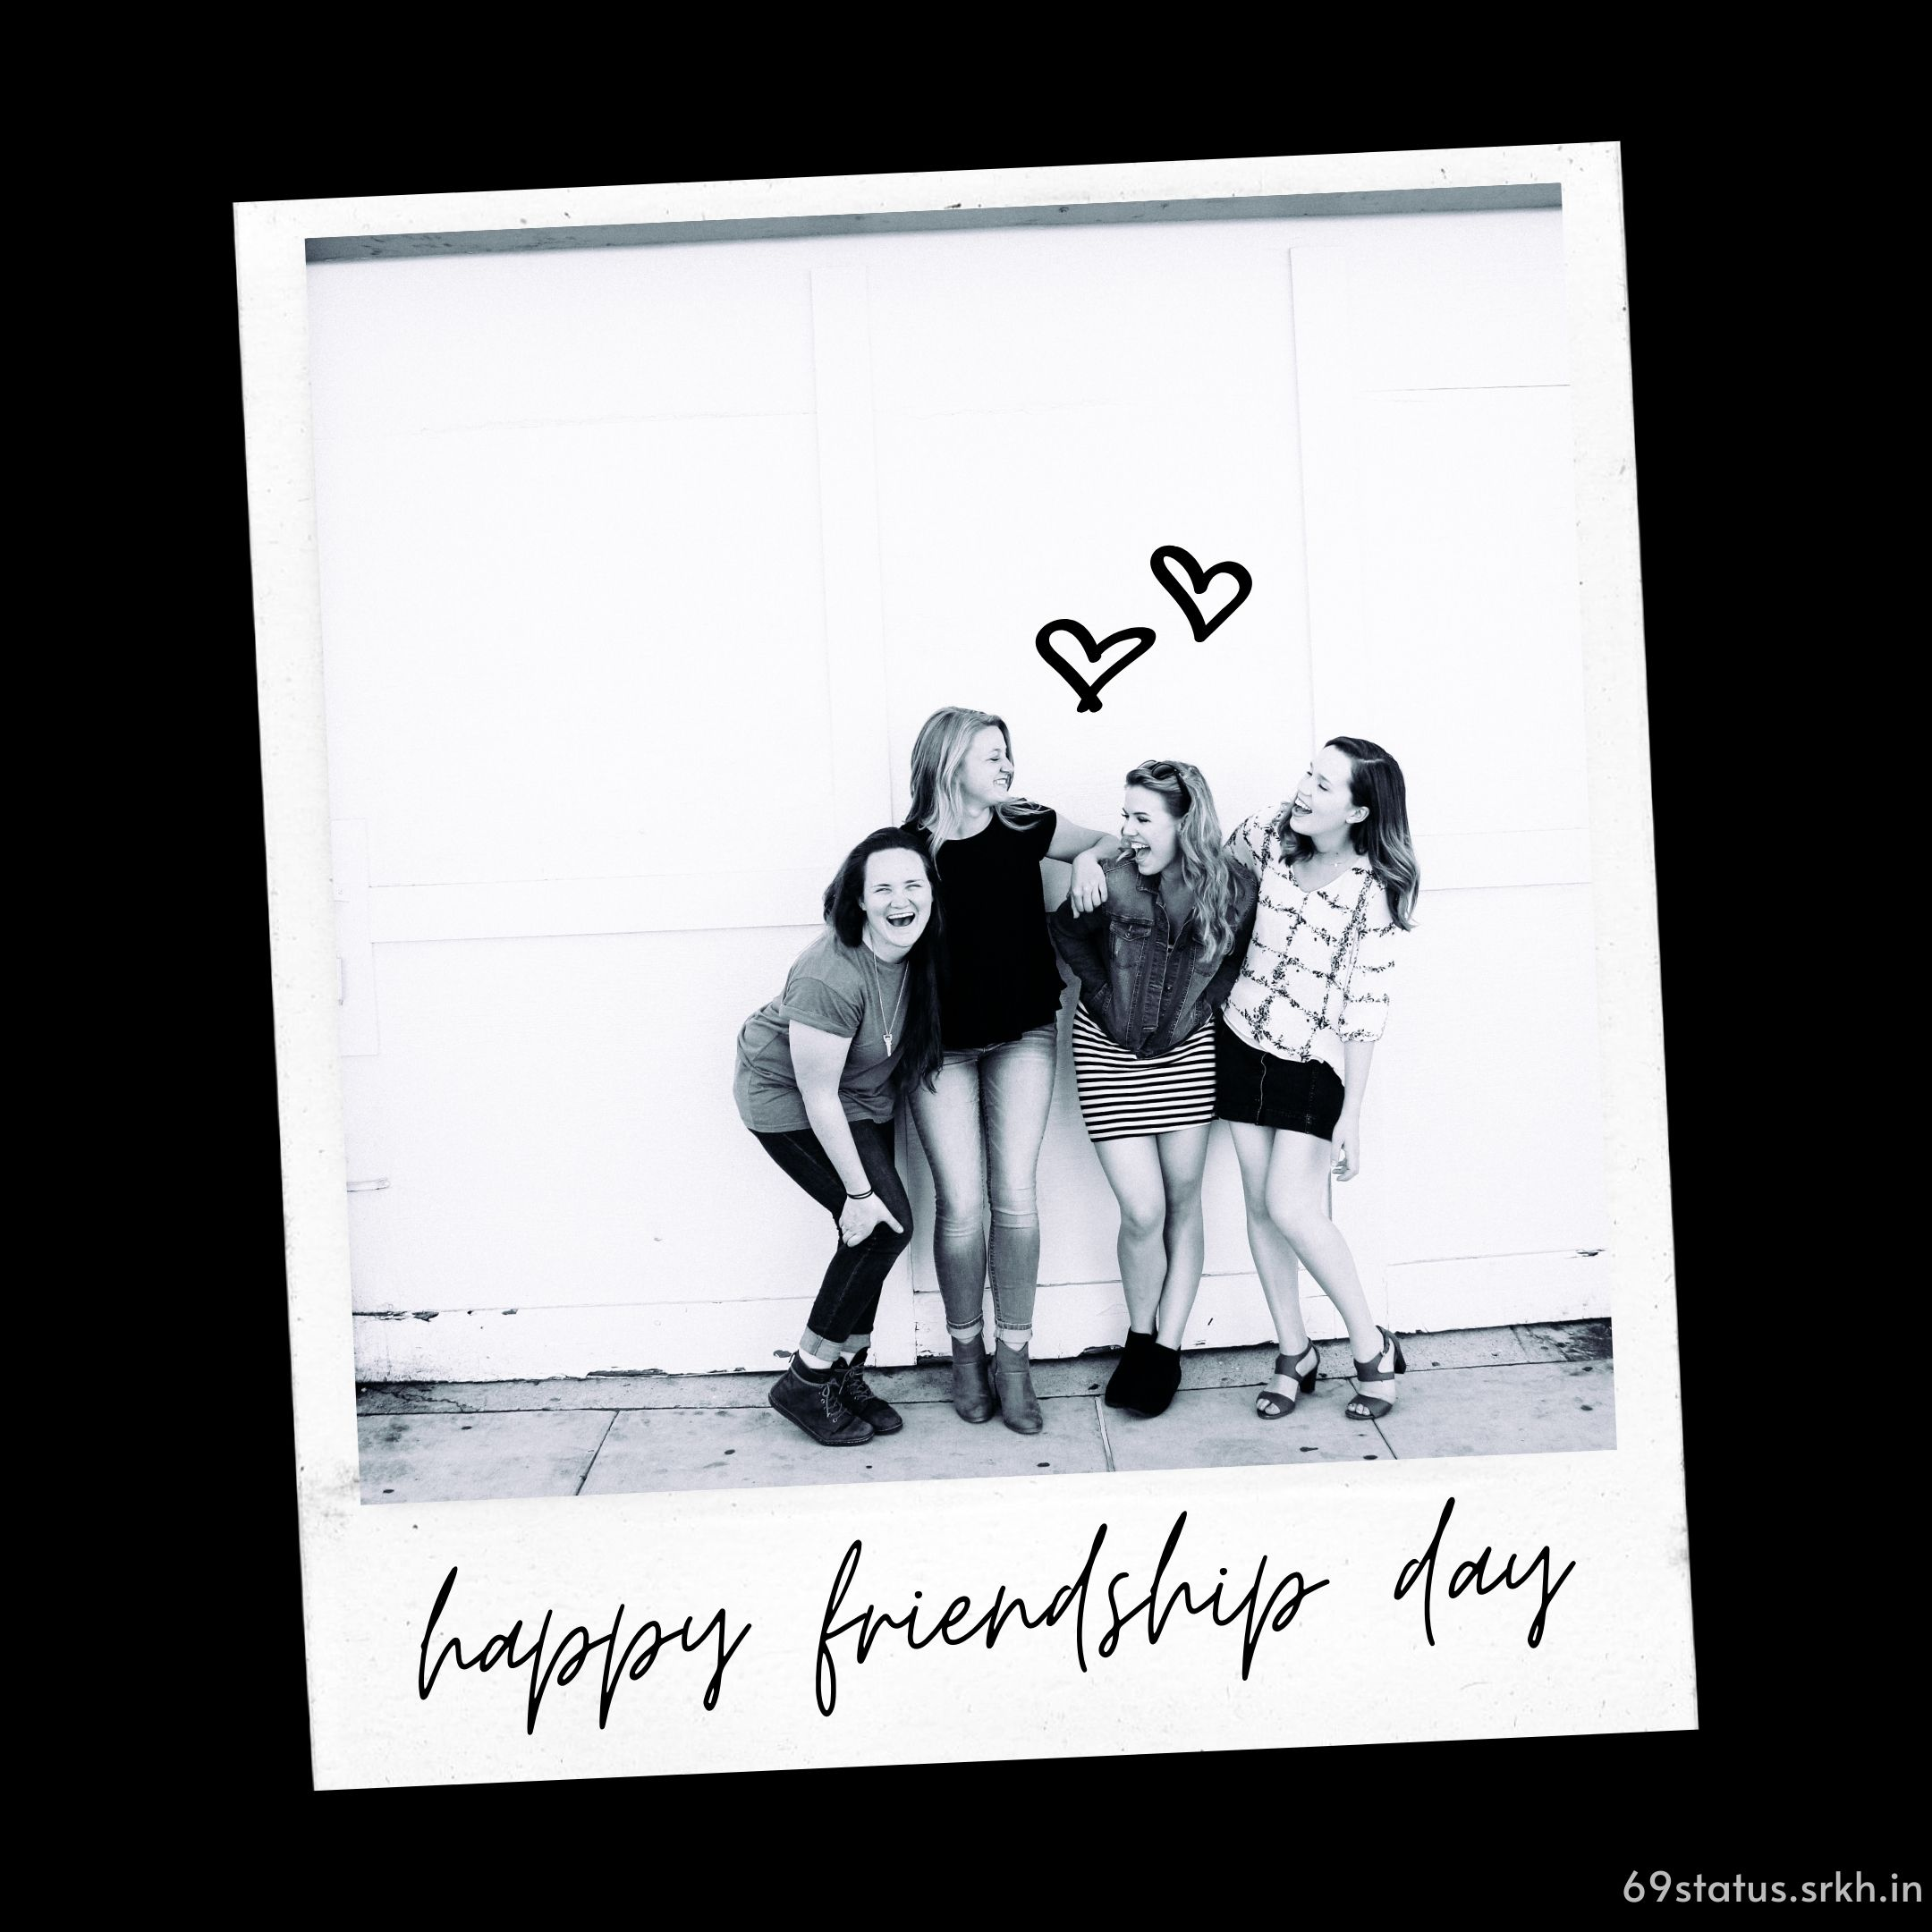 Happy Friendship Day HD Images full HD free download.